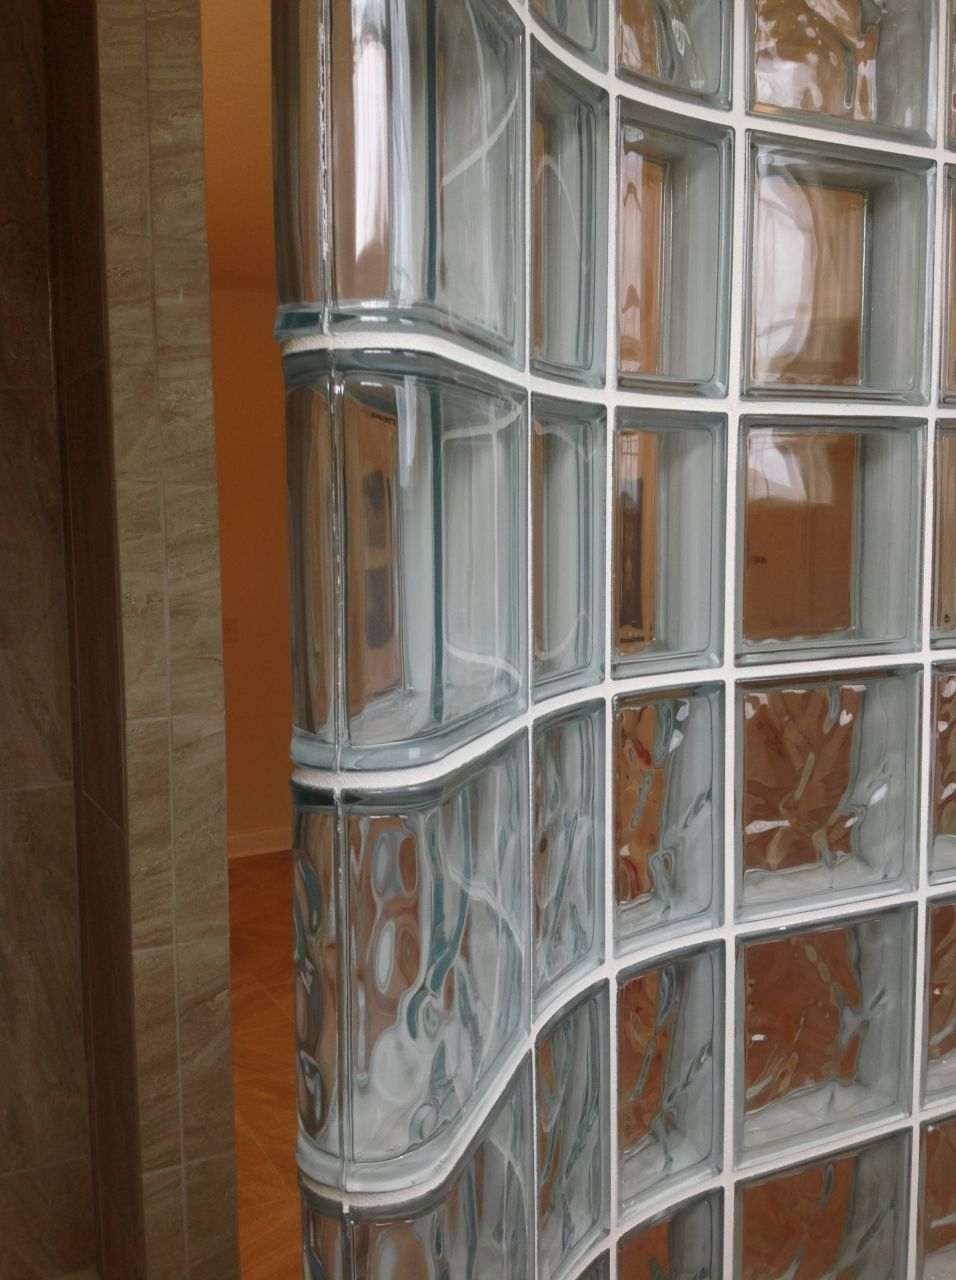 Superieur Glass Block Shower Wall With Thinner Curved Glass Blocks